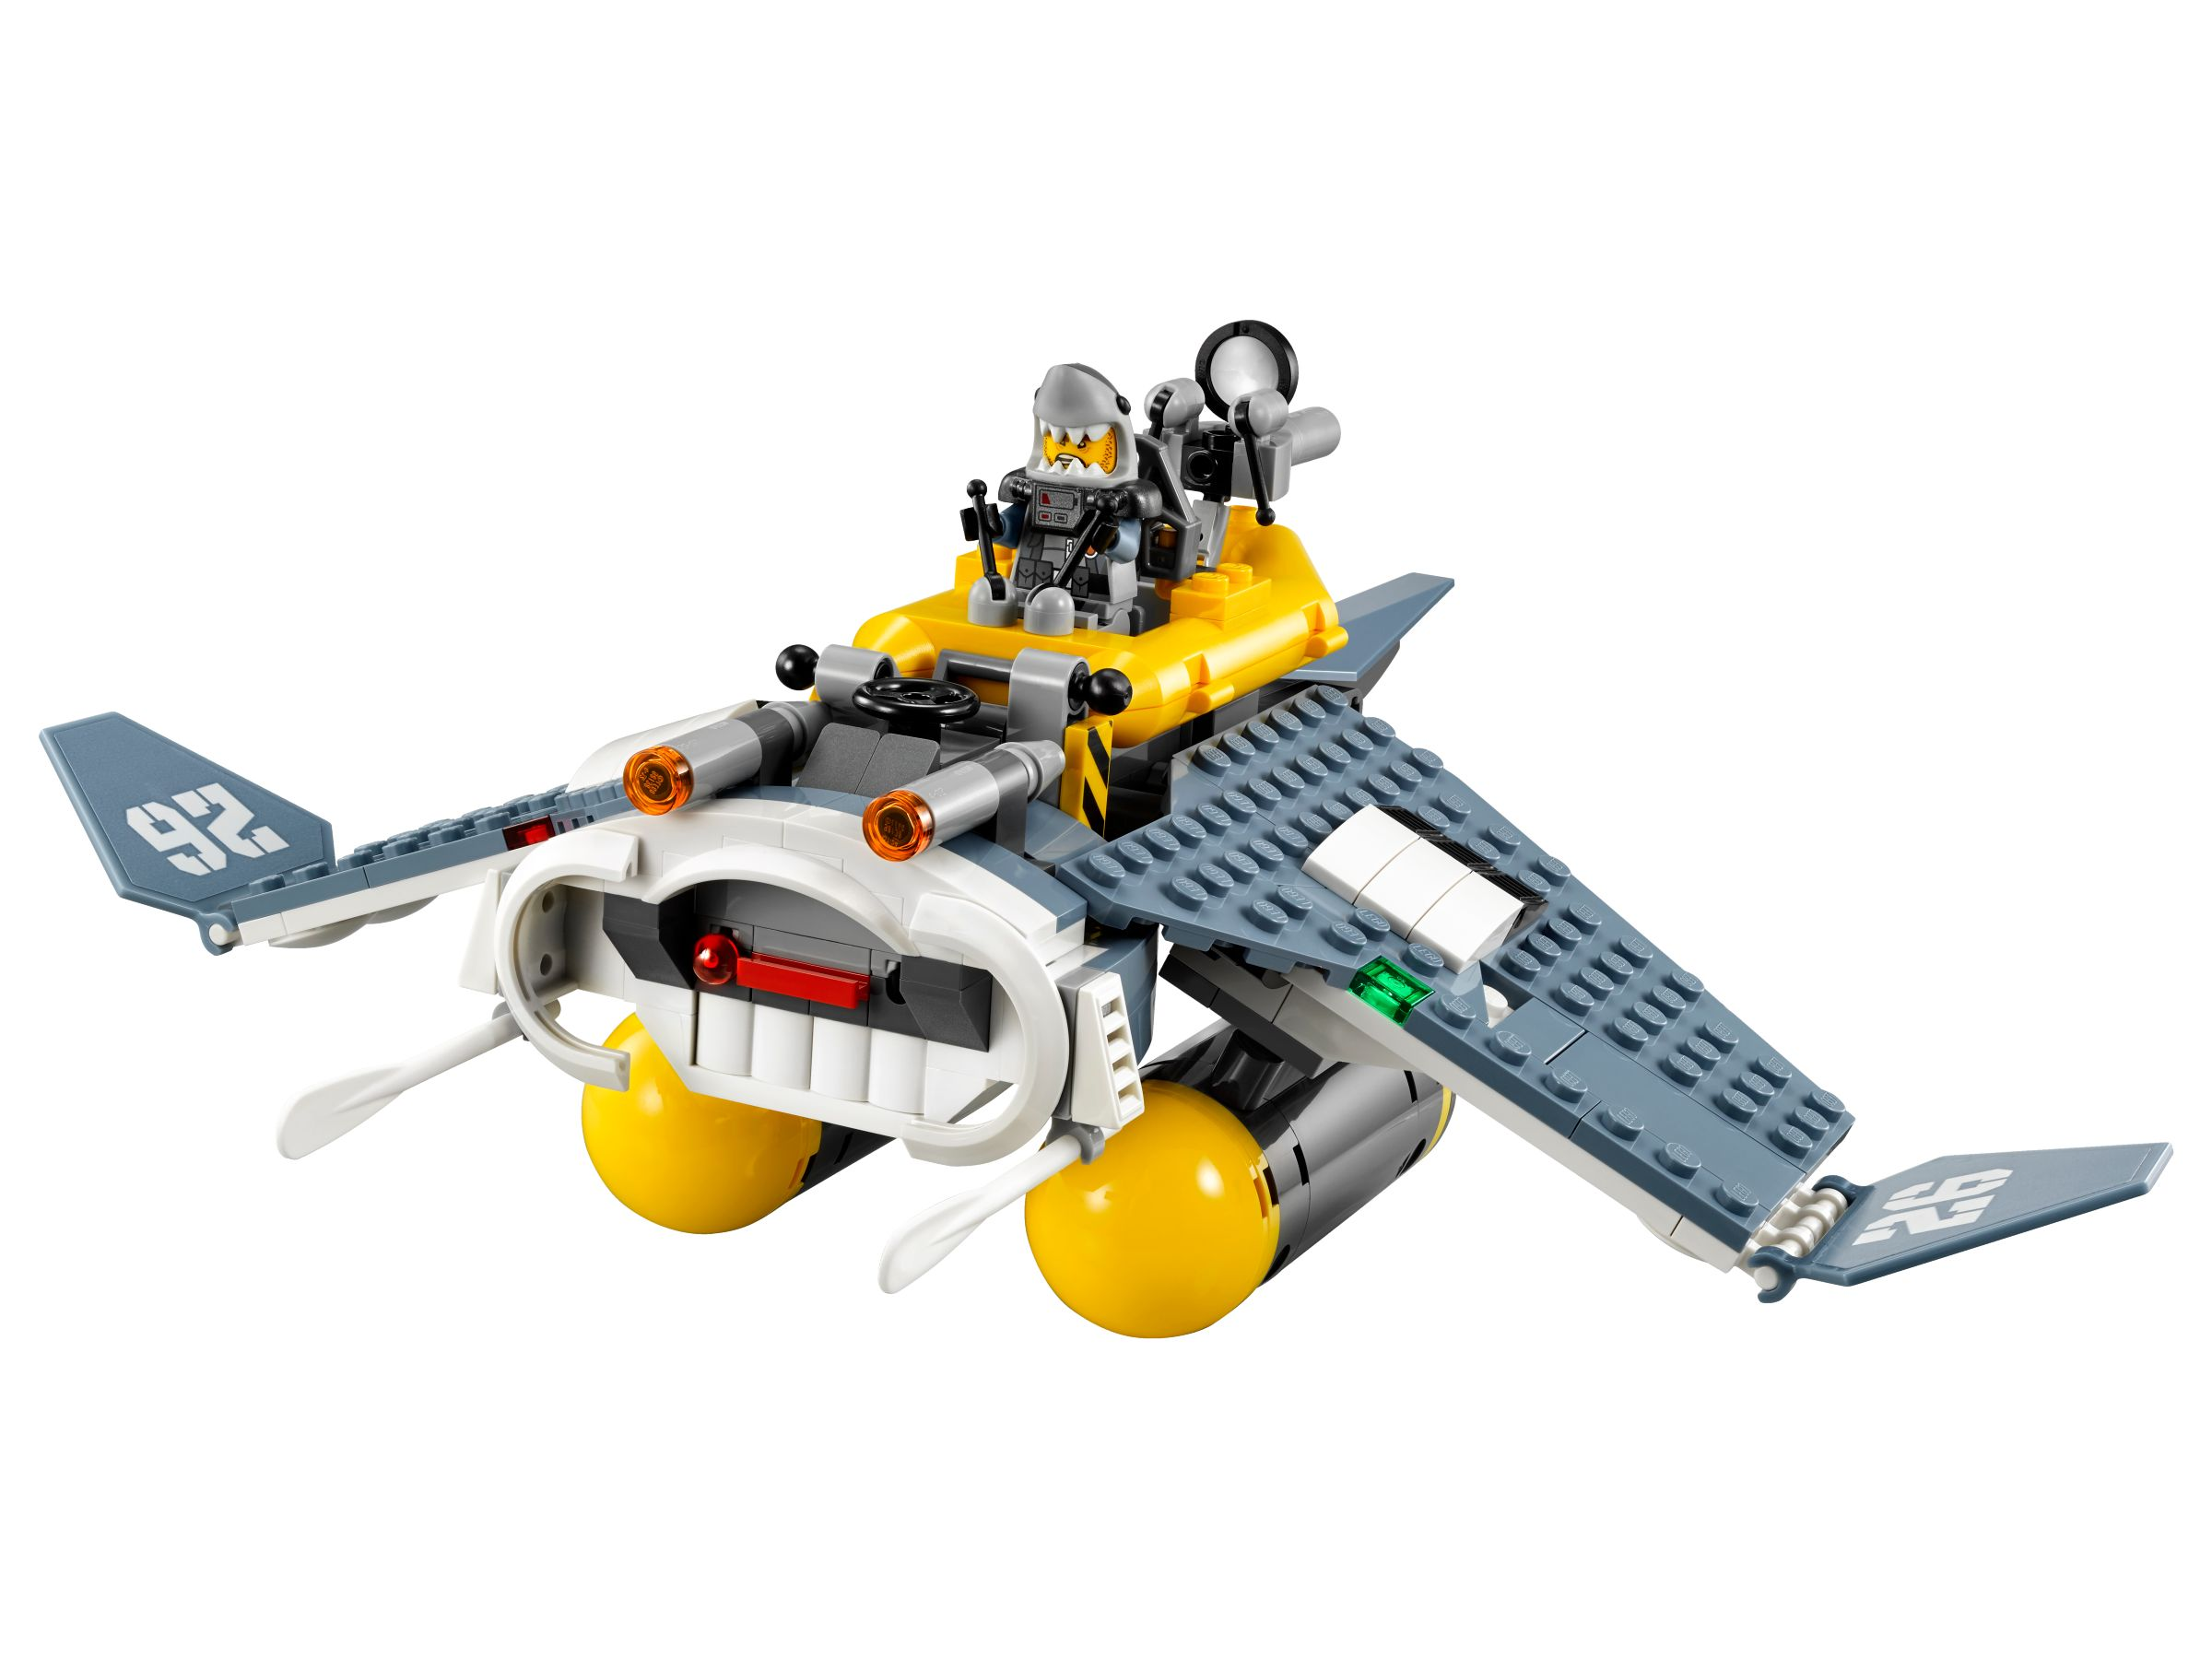 LEGO The LEGO Ninjago Movie 70609 Mantarochen-Flieger LEGO_70609_alt2.jpg